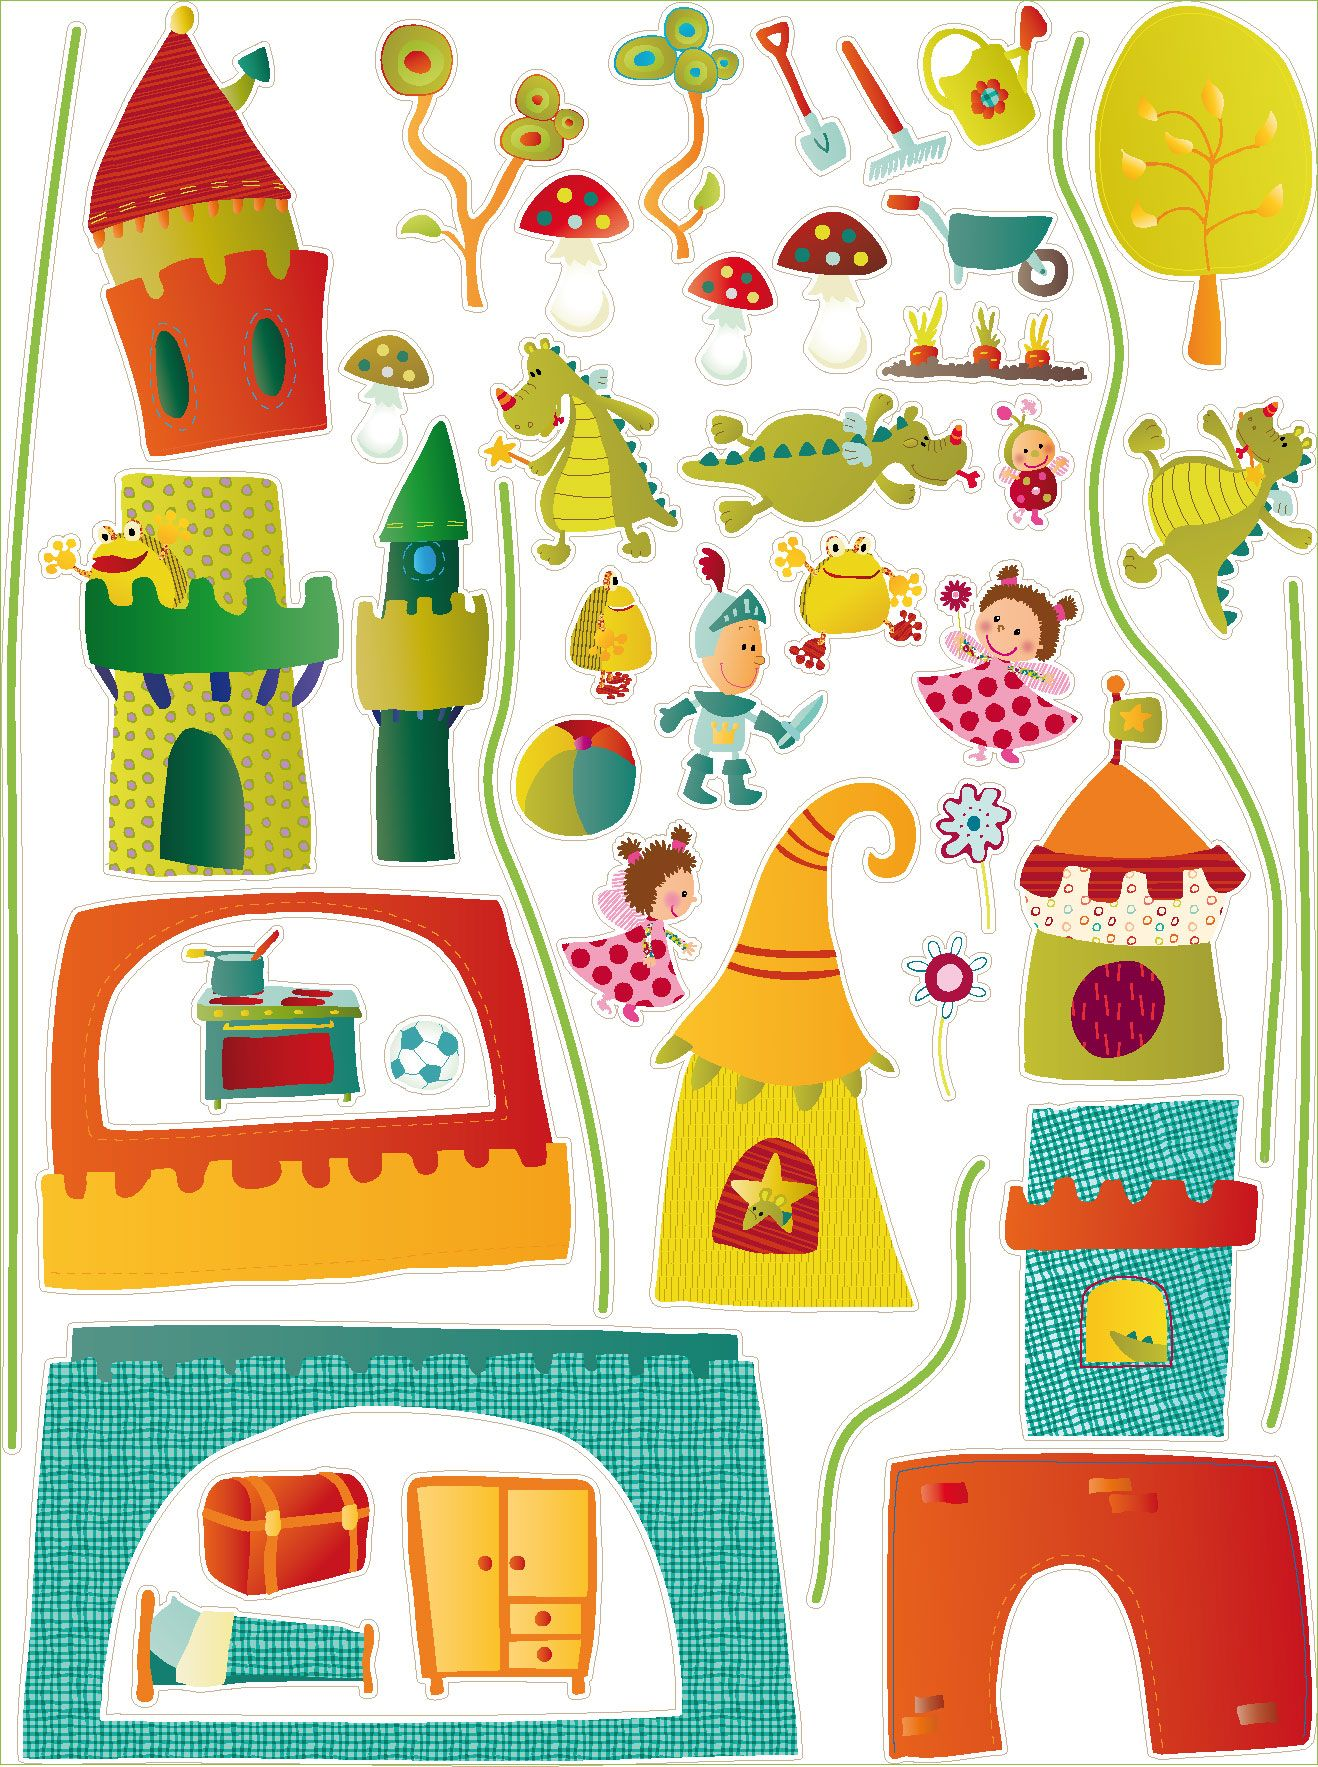 very small stickers inside the wendy house lilliputiens a fantasy knight princess castle dragon wall stickers so cute walter stickers from lilliputiens